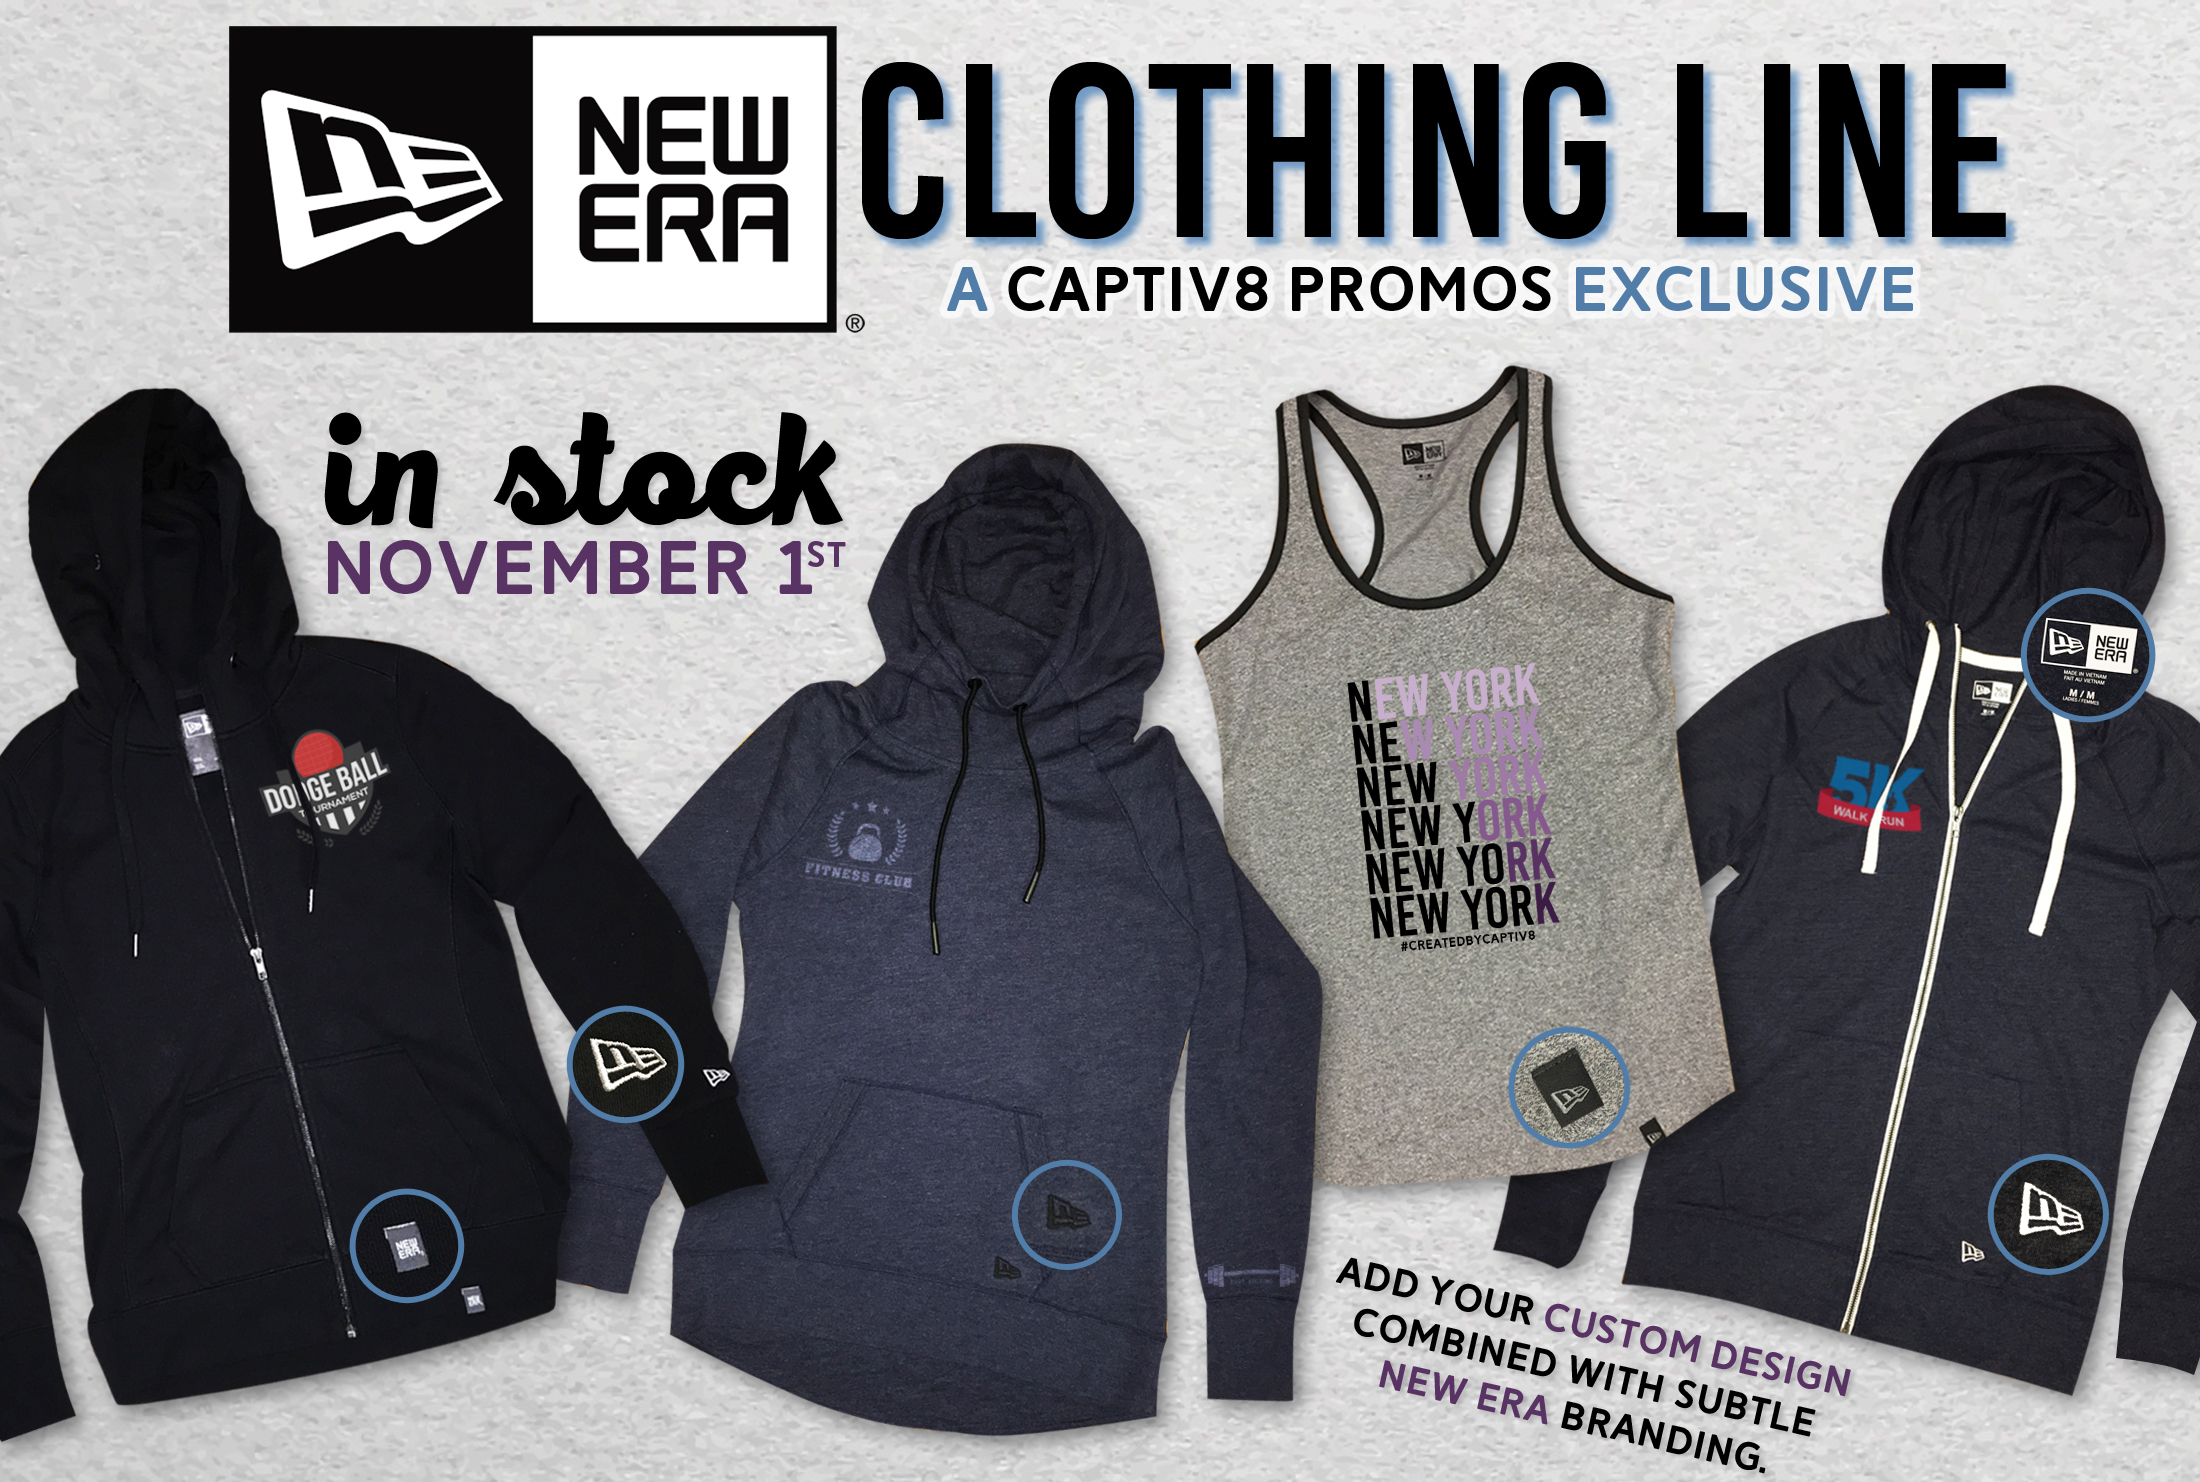 New Era Clothing Line - A Captiv8 *Exclusive* Coming Soon